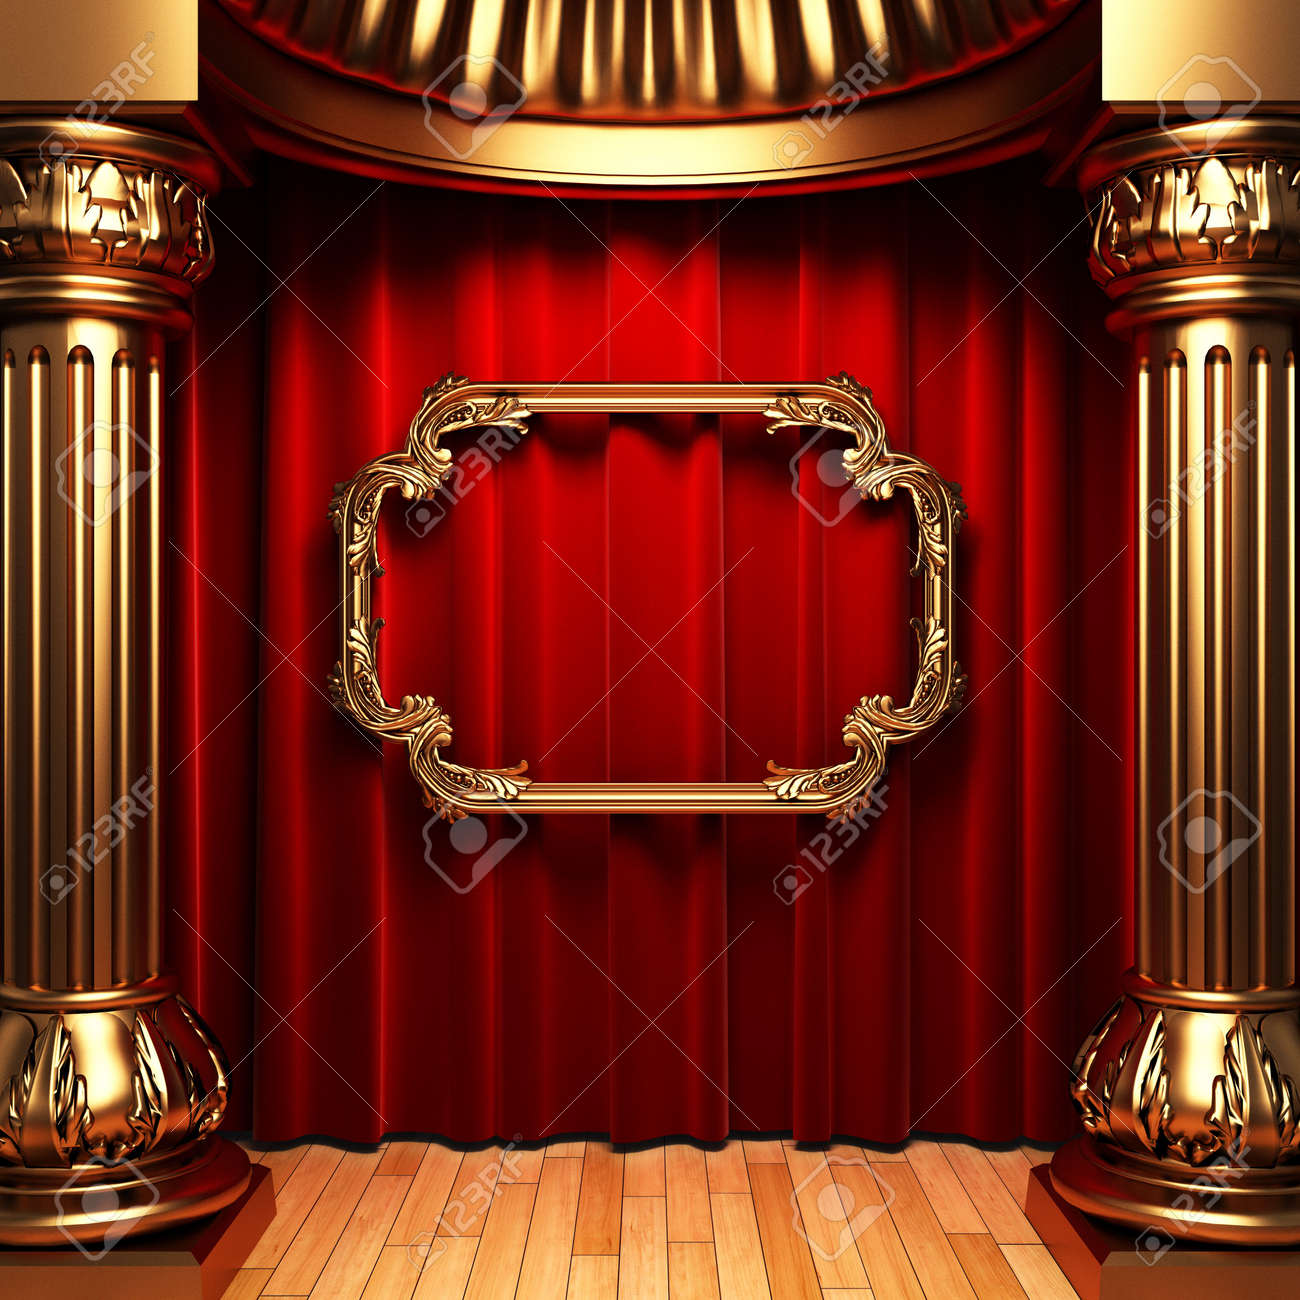 red curtains, gold columns and frame Stock Photo - 6138810